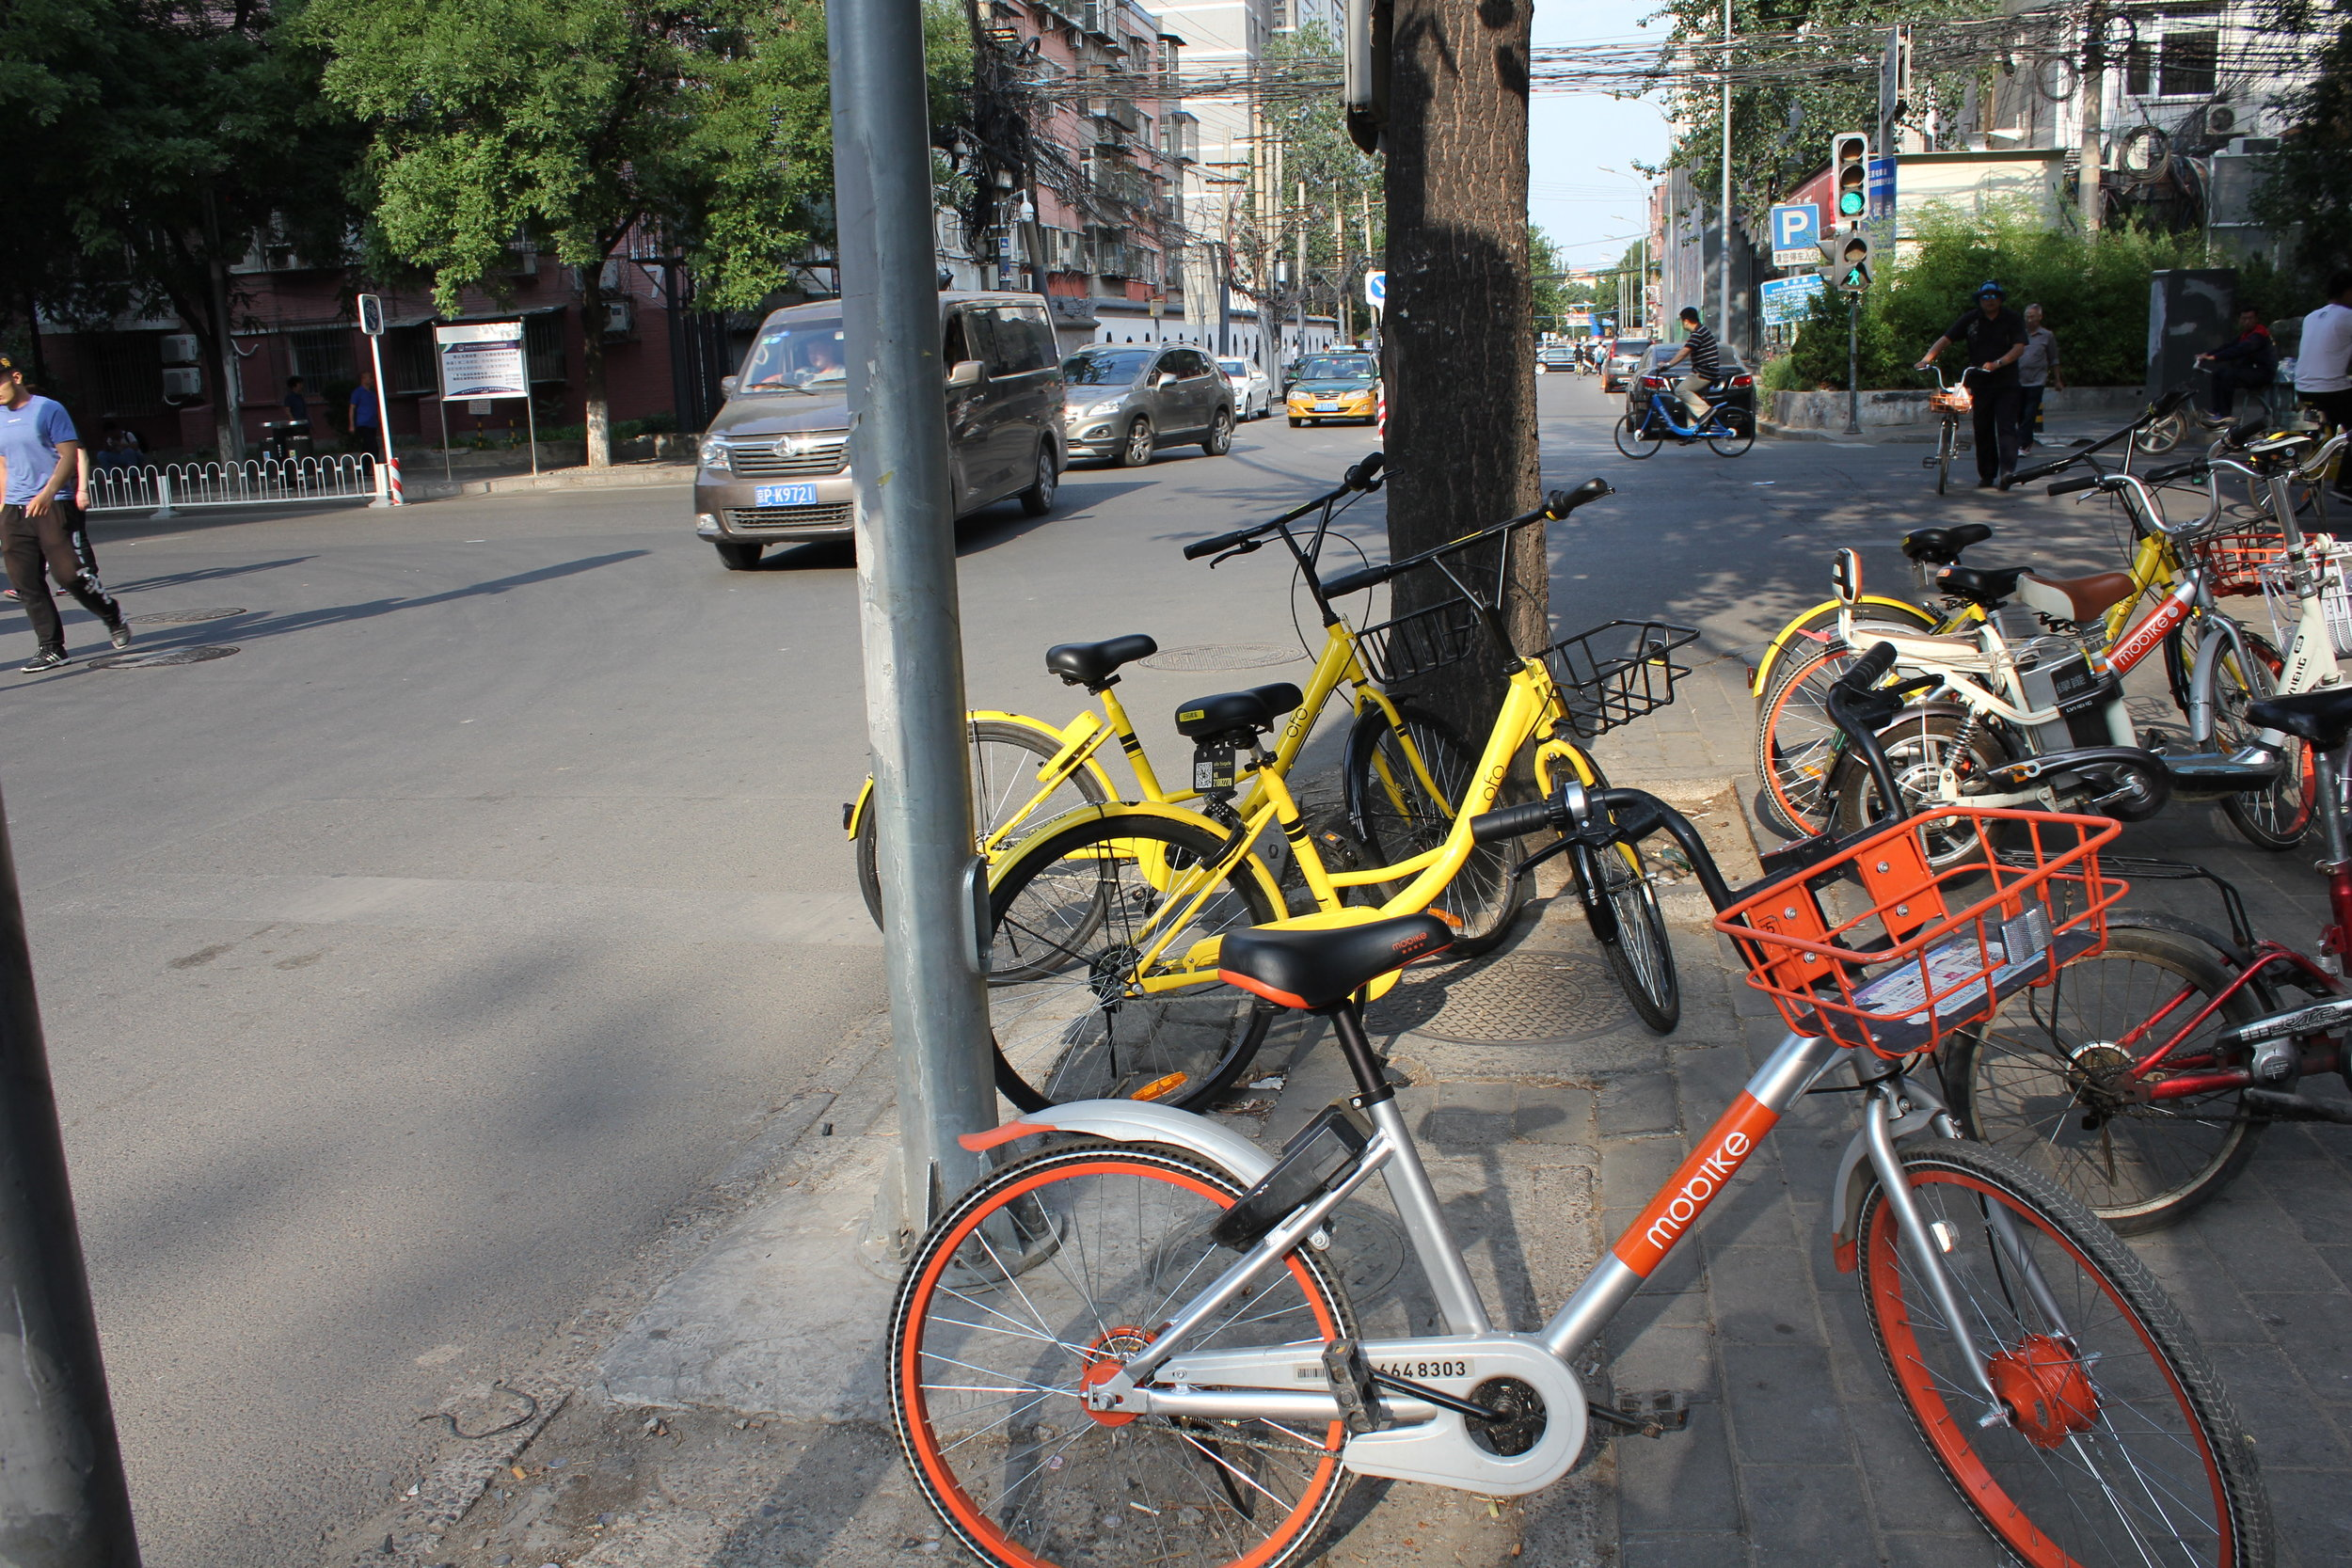 Ofo and Mobike bicycles on a street corner